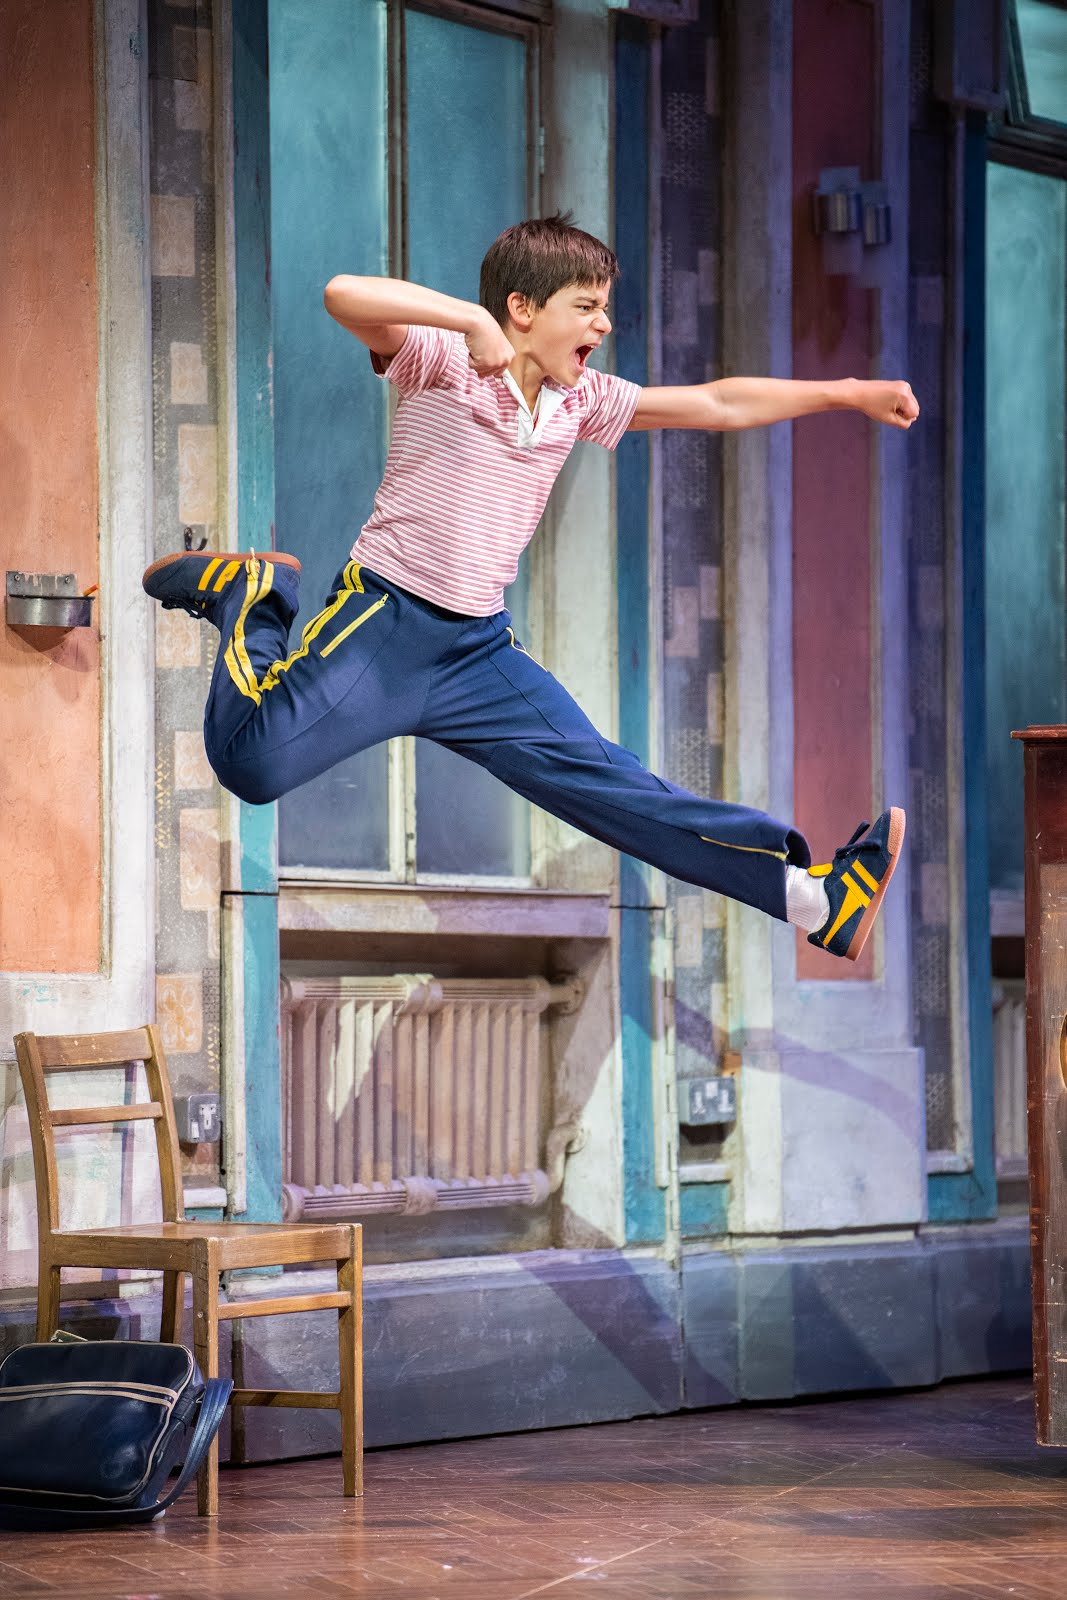 BILLY ELLIOT - Funny, gritty, heart-warming.